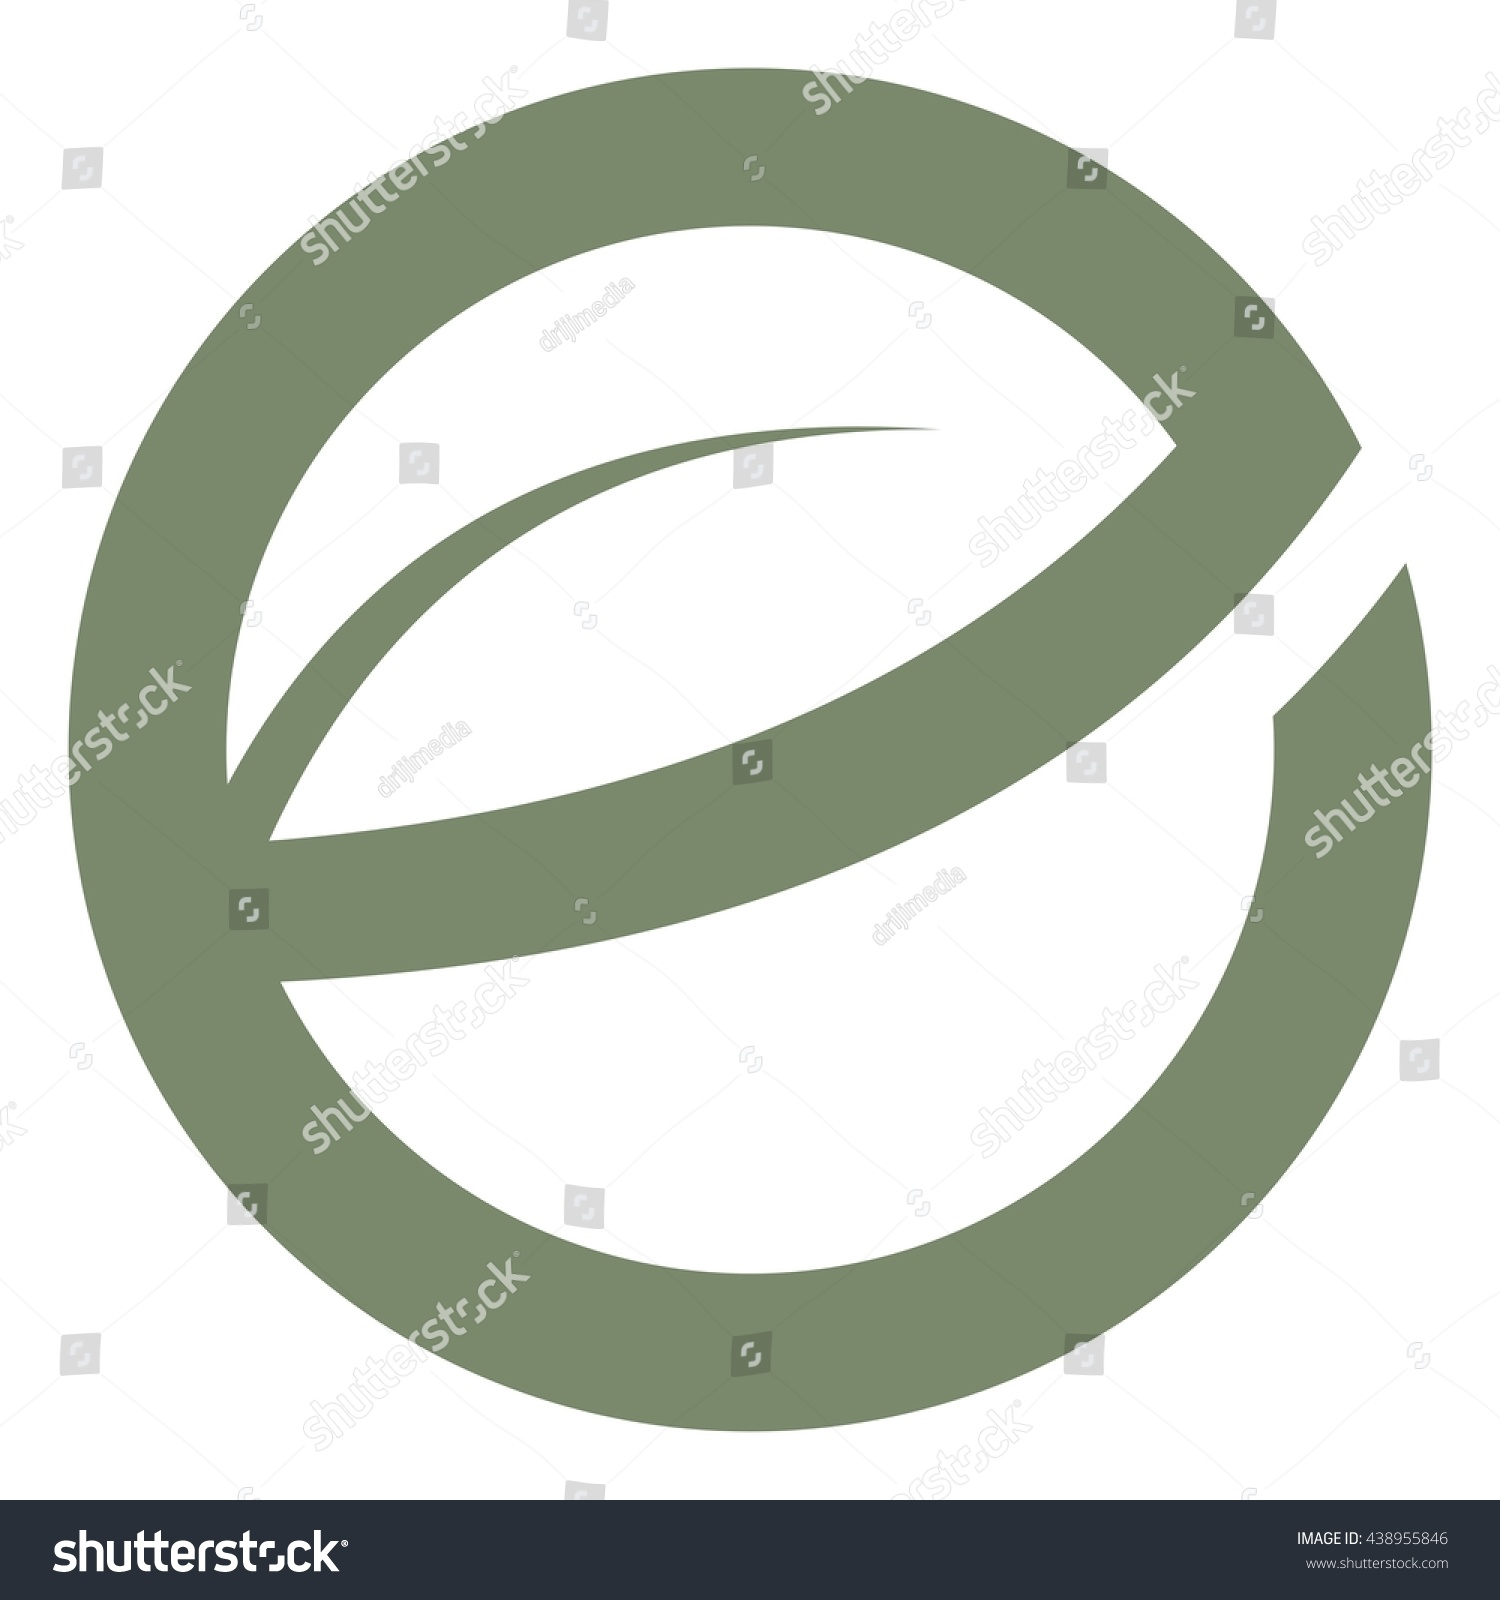 Leave letter e circle logo design stock vector 438955846 shutterstock thecheapjerseys Image collections